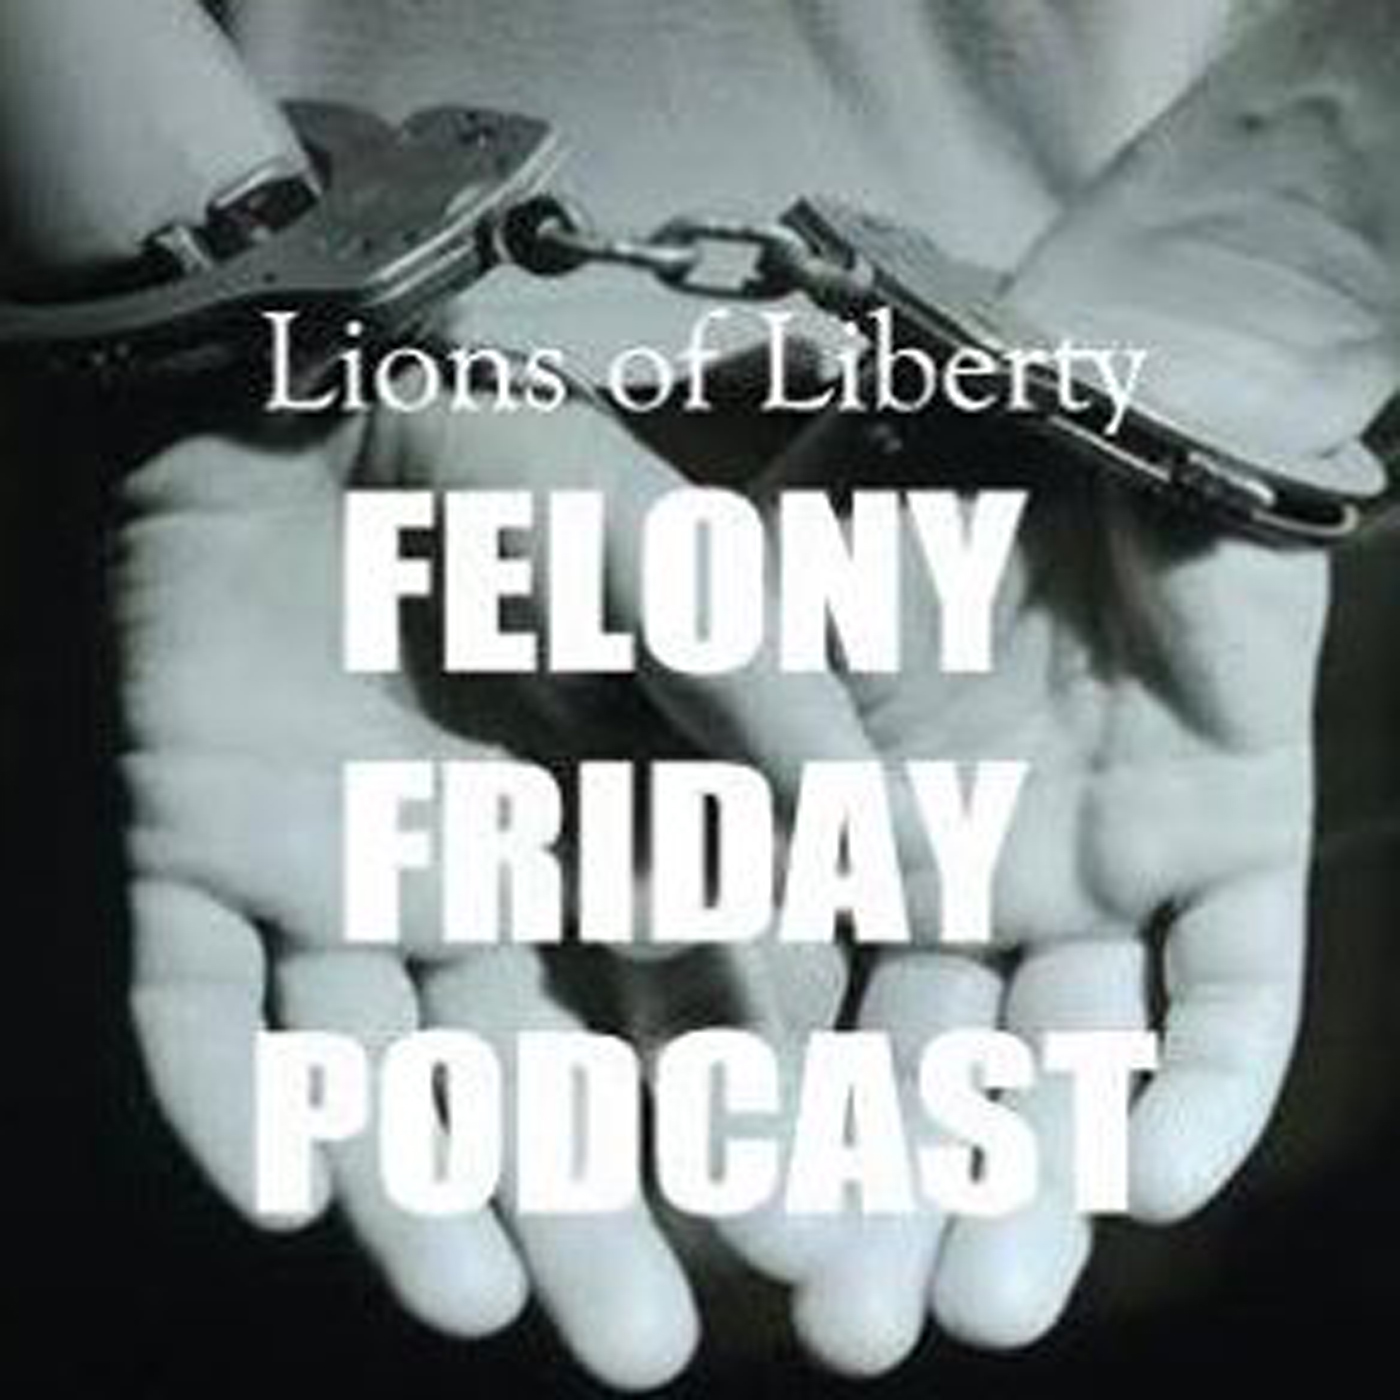 Felony Friday Ep. 014 - Could Jerry Sandusky Be Innocent? A 2nd Interview with John Ziegler